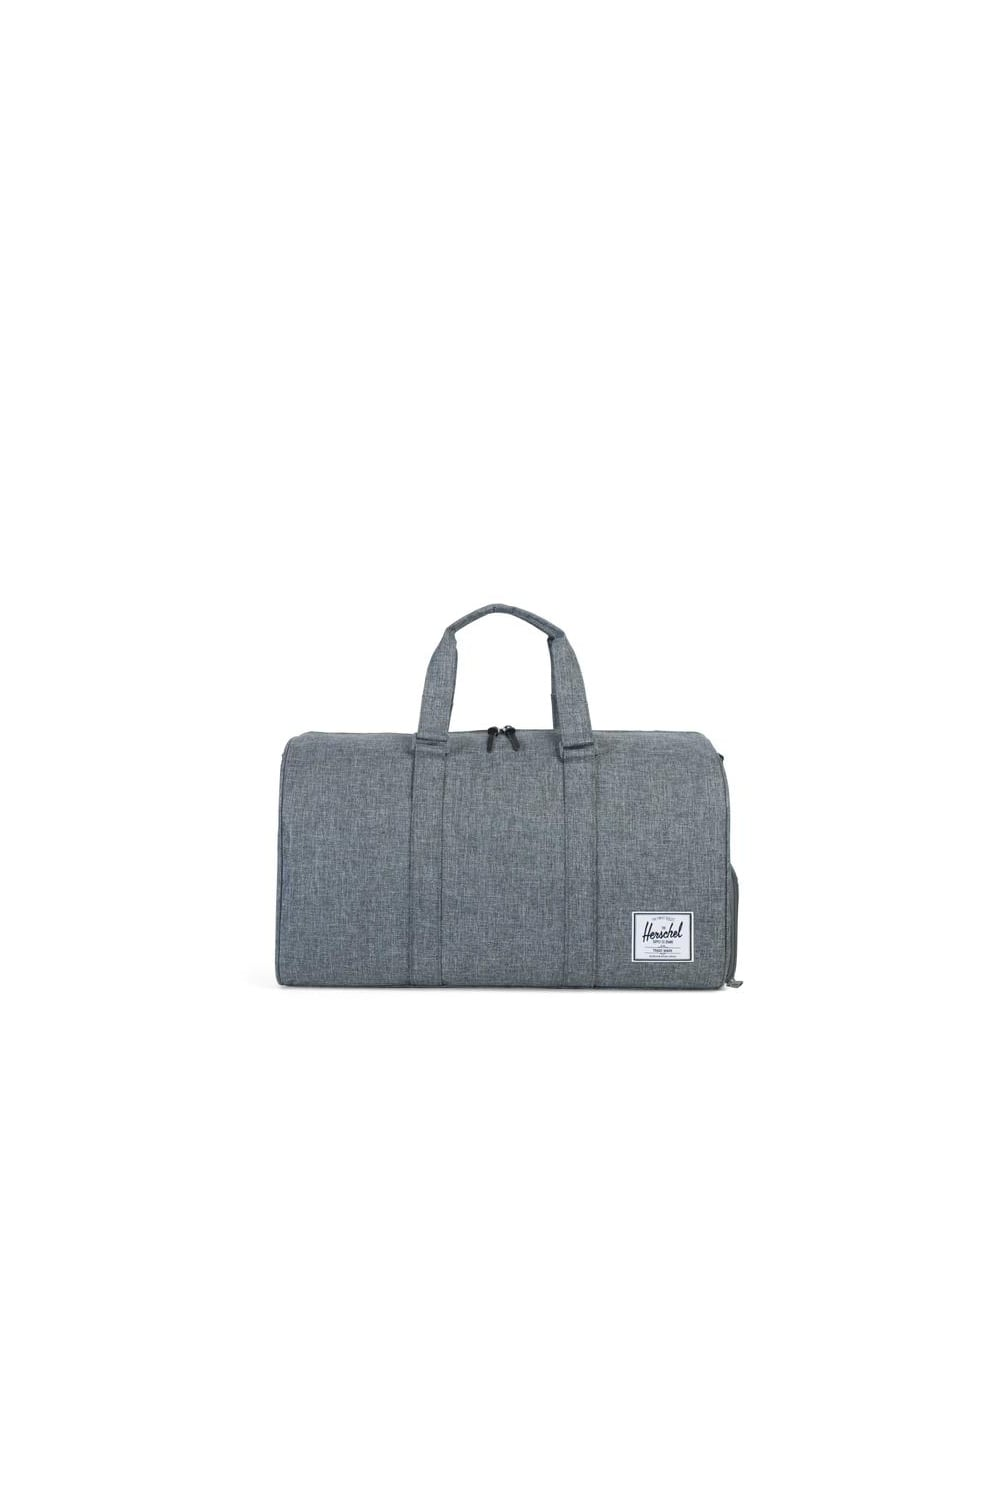 Herschel Supply Co Novel Duffle Bag (Raven Crosshatch)  3397f49ba2ecd